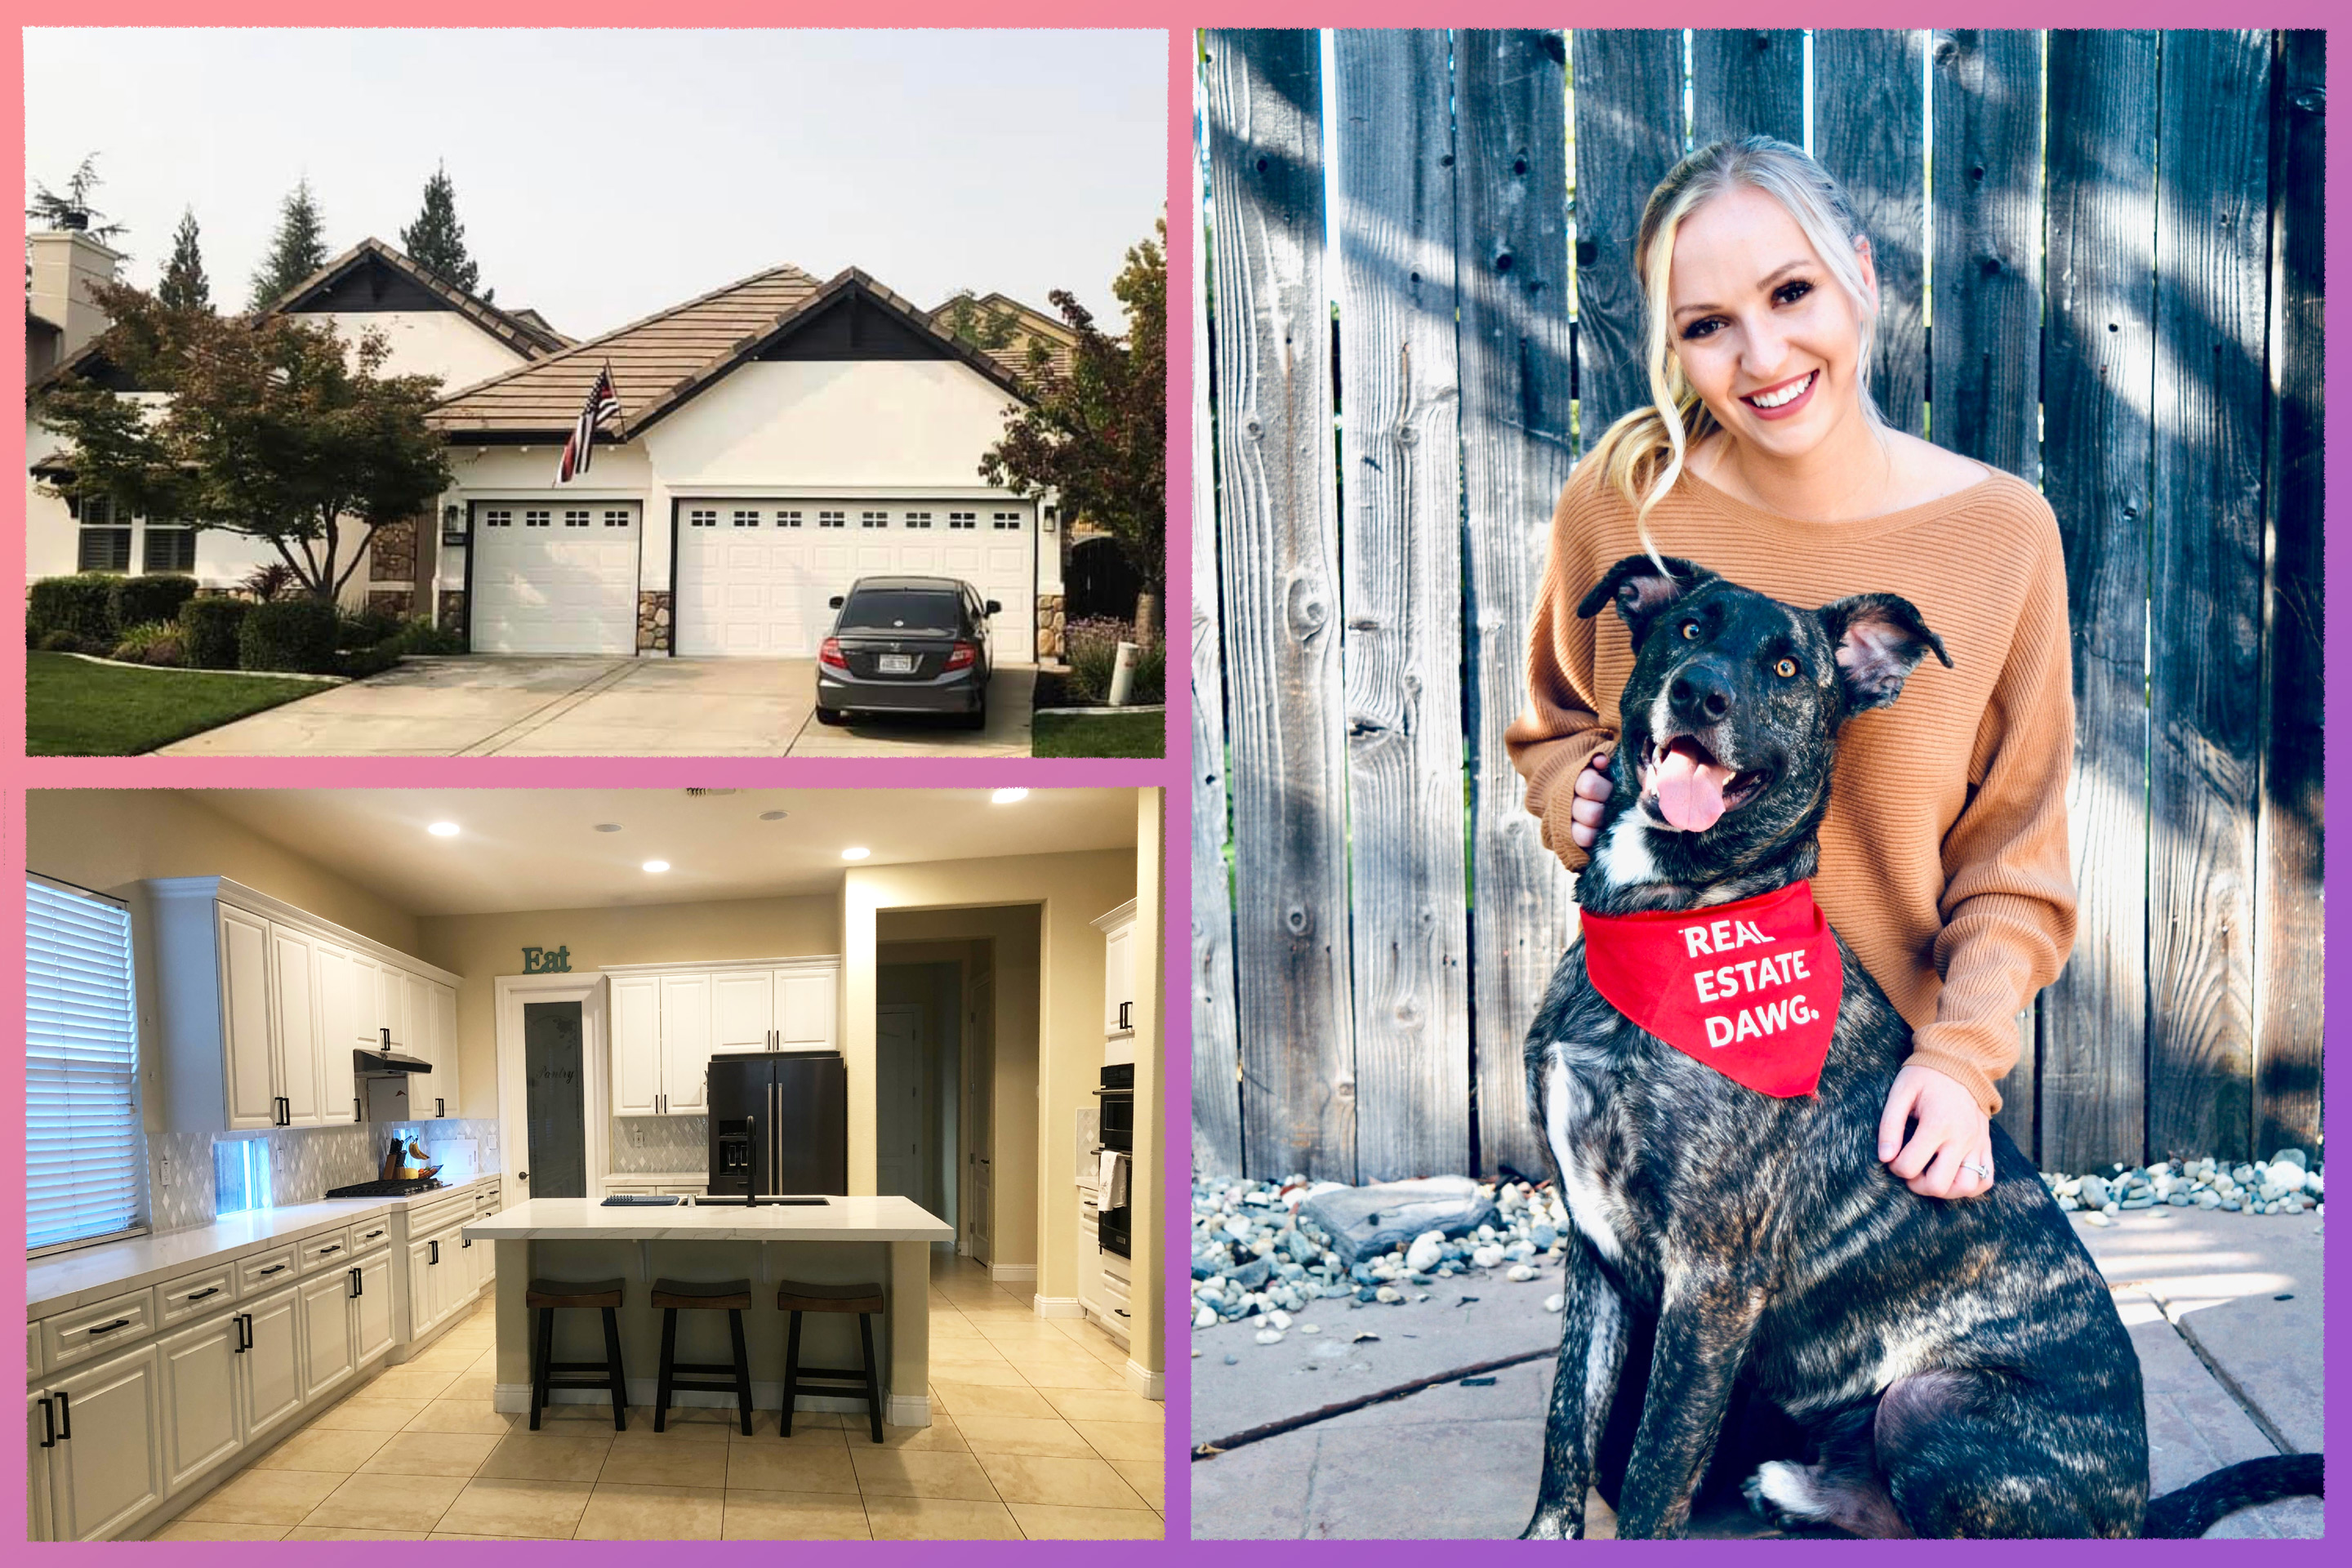 Photo of Julia Beals and her dog, interior and exterior of her home.